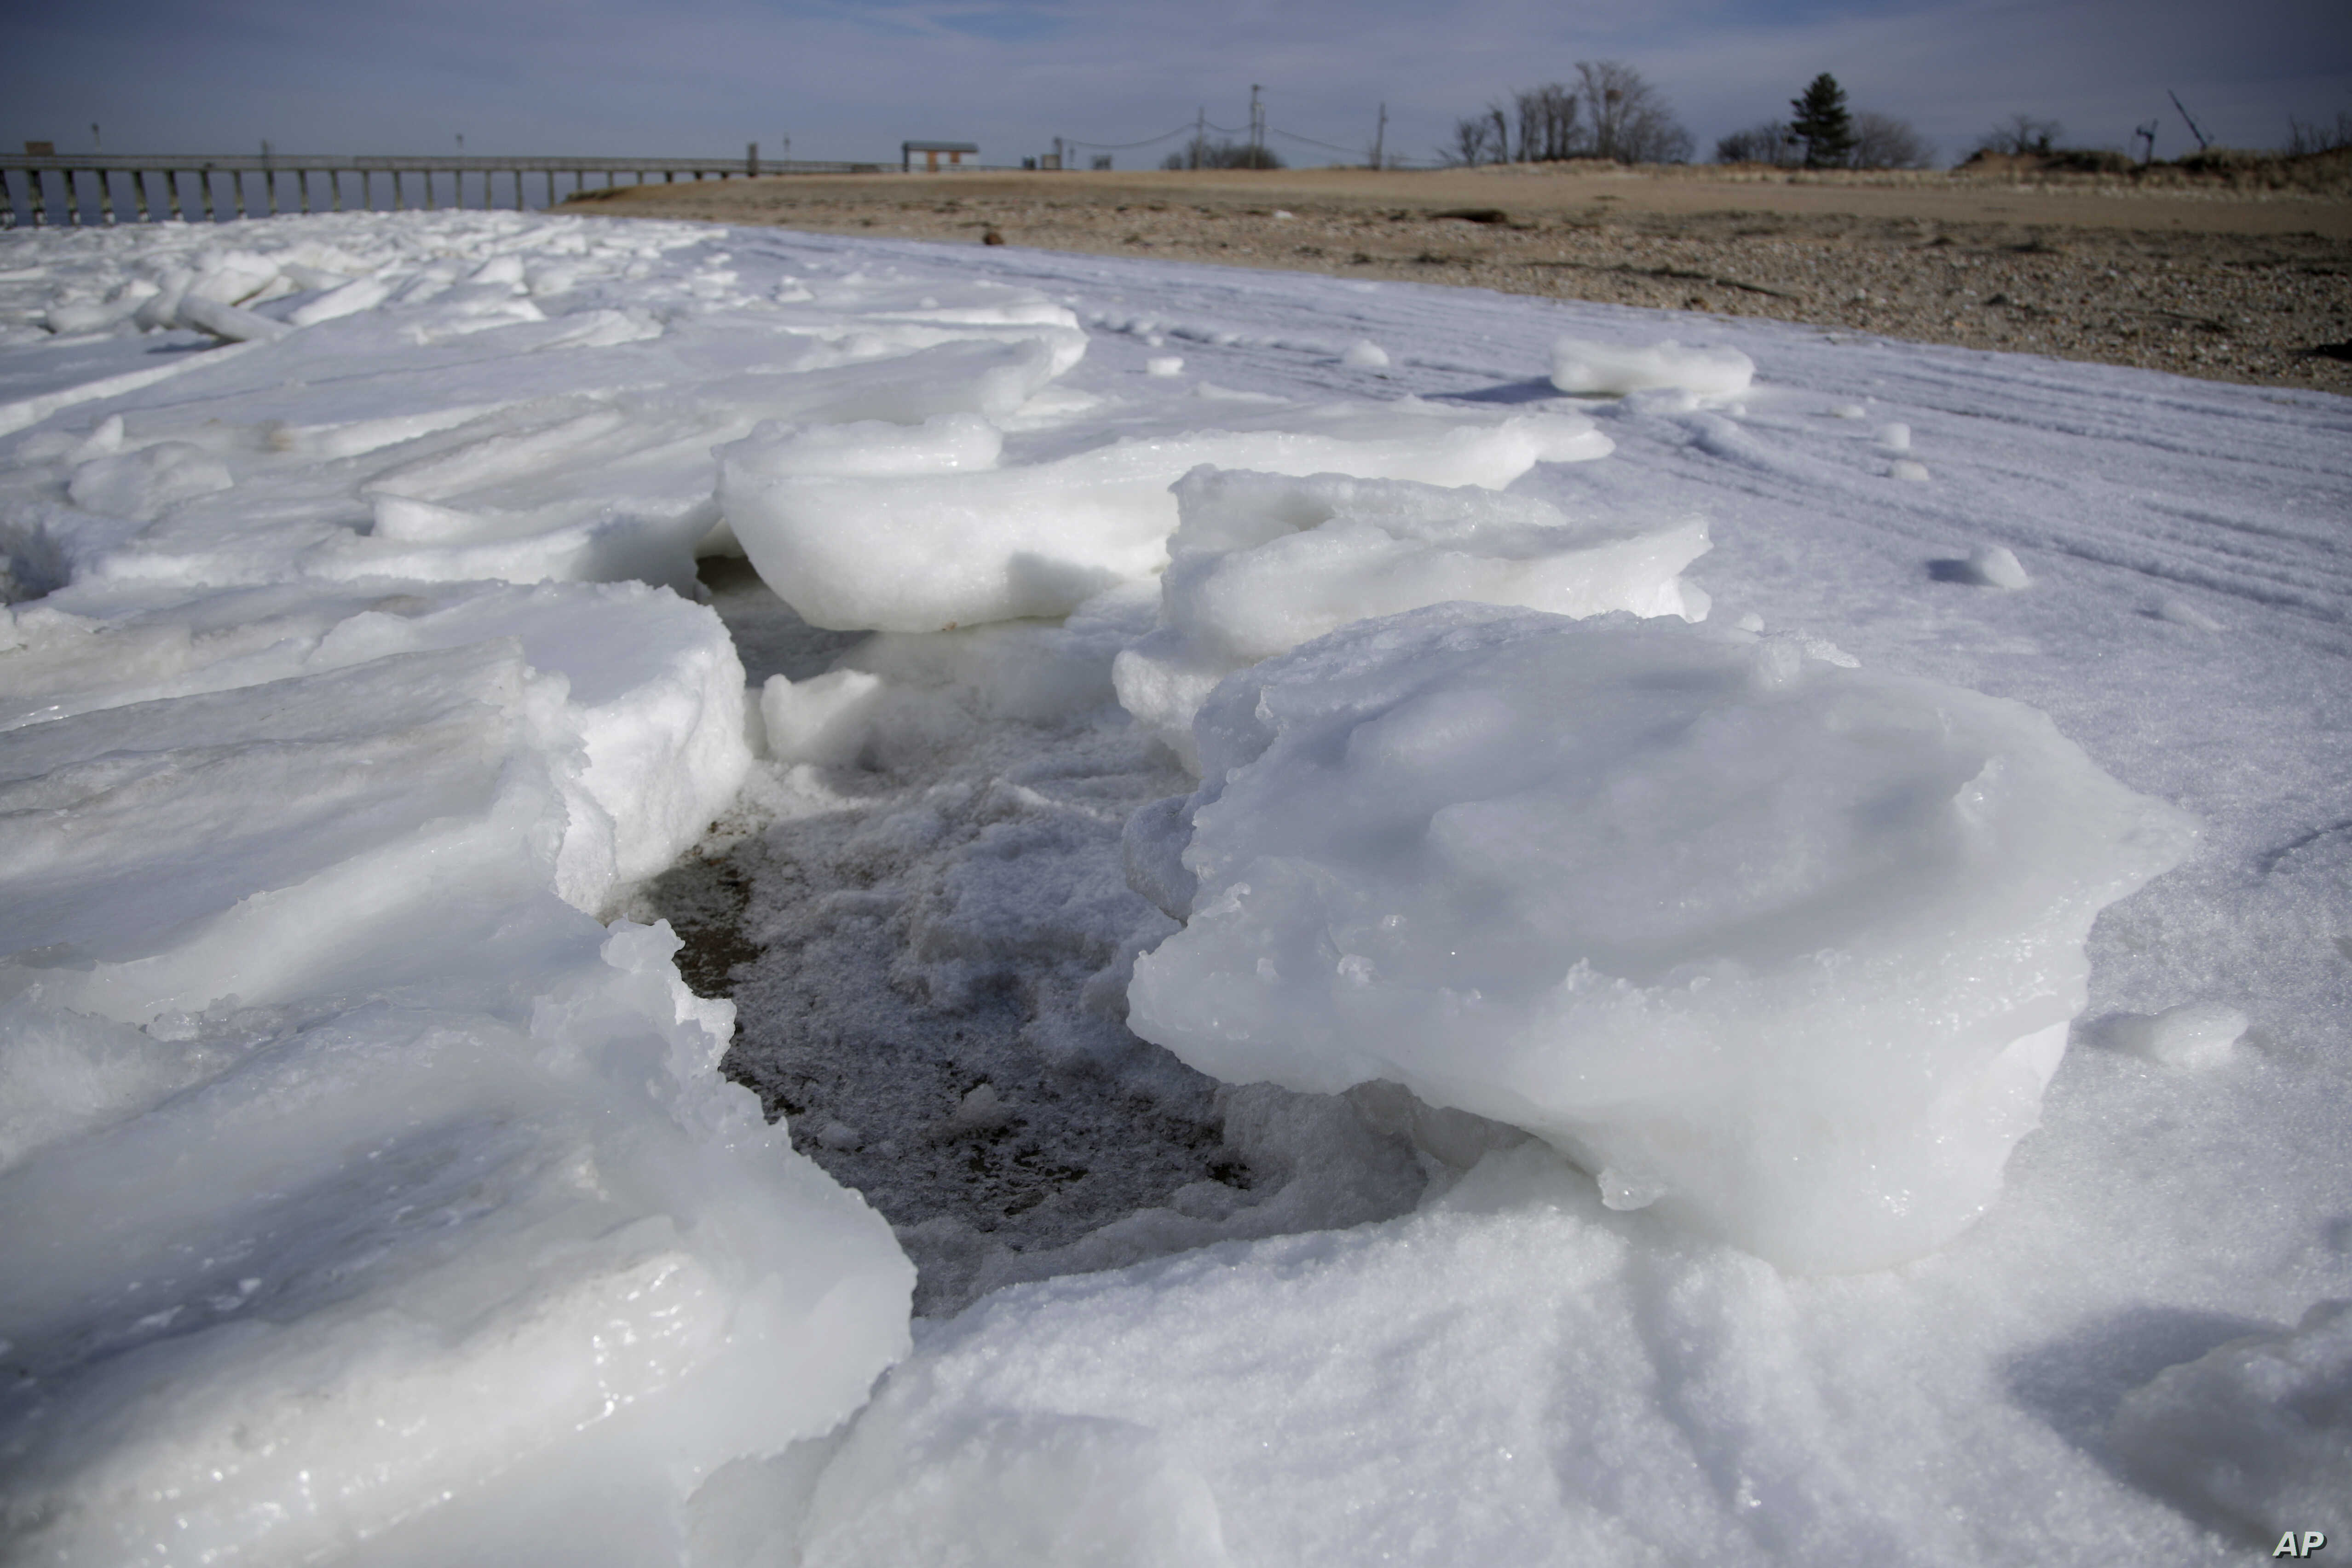 Chunks of ice forms along the shore of the Raritan Bay in the northern part of the New Jersey Shore,  Jan. 3, 2018, in Keansburg, New Jersey.